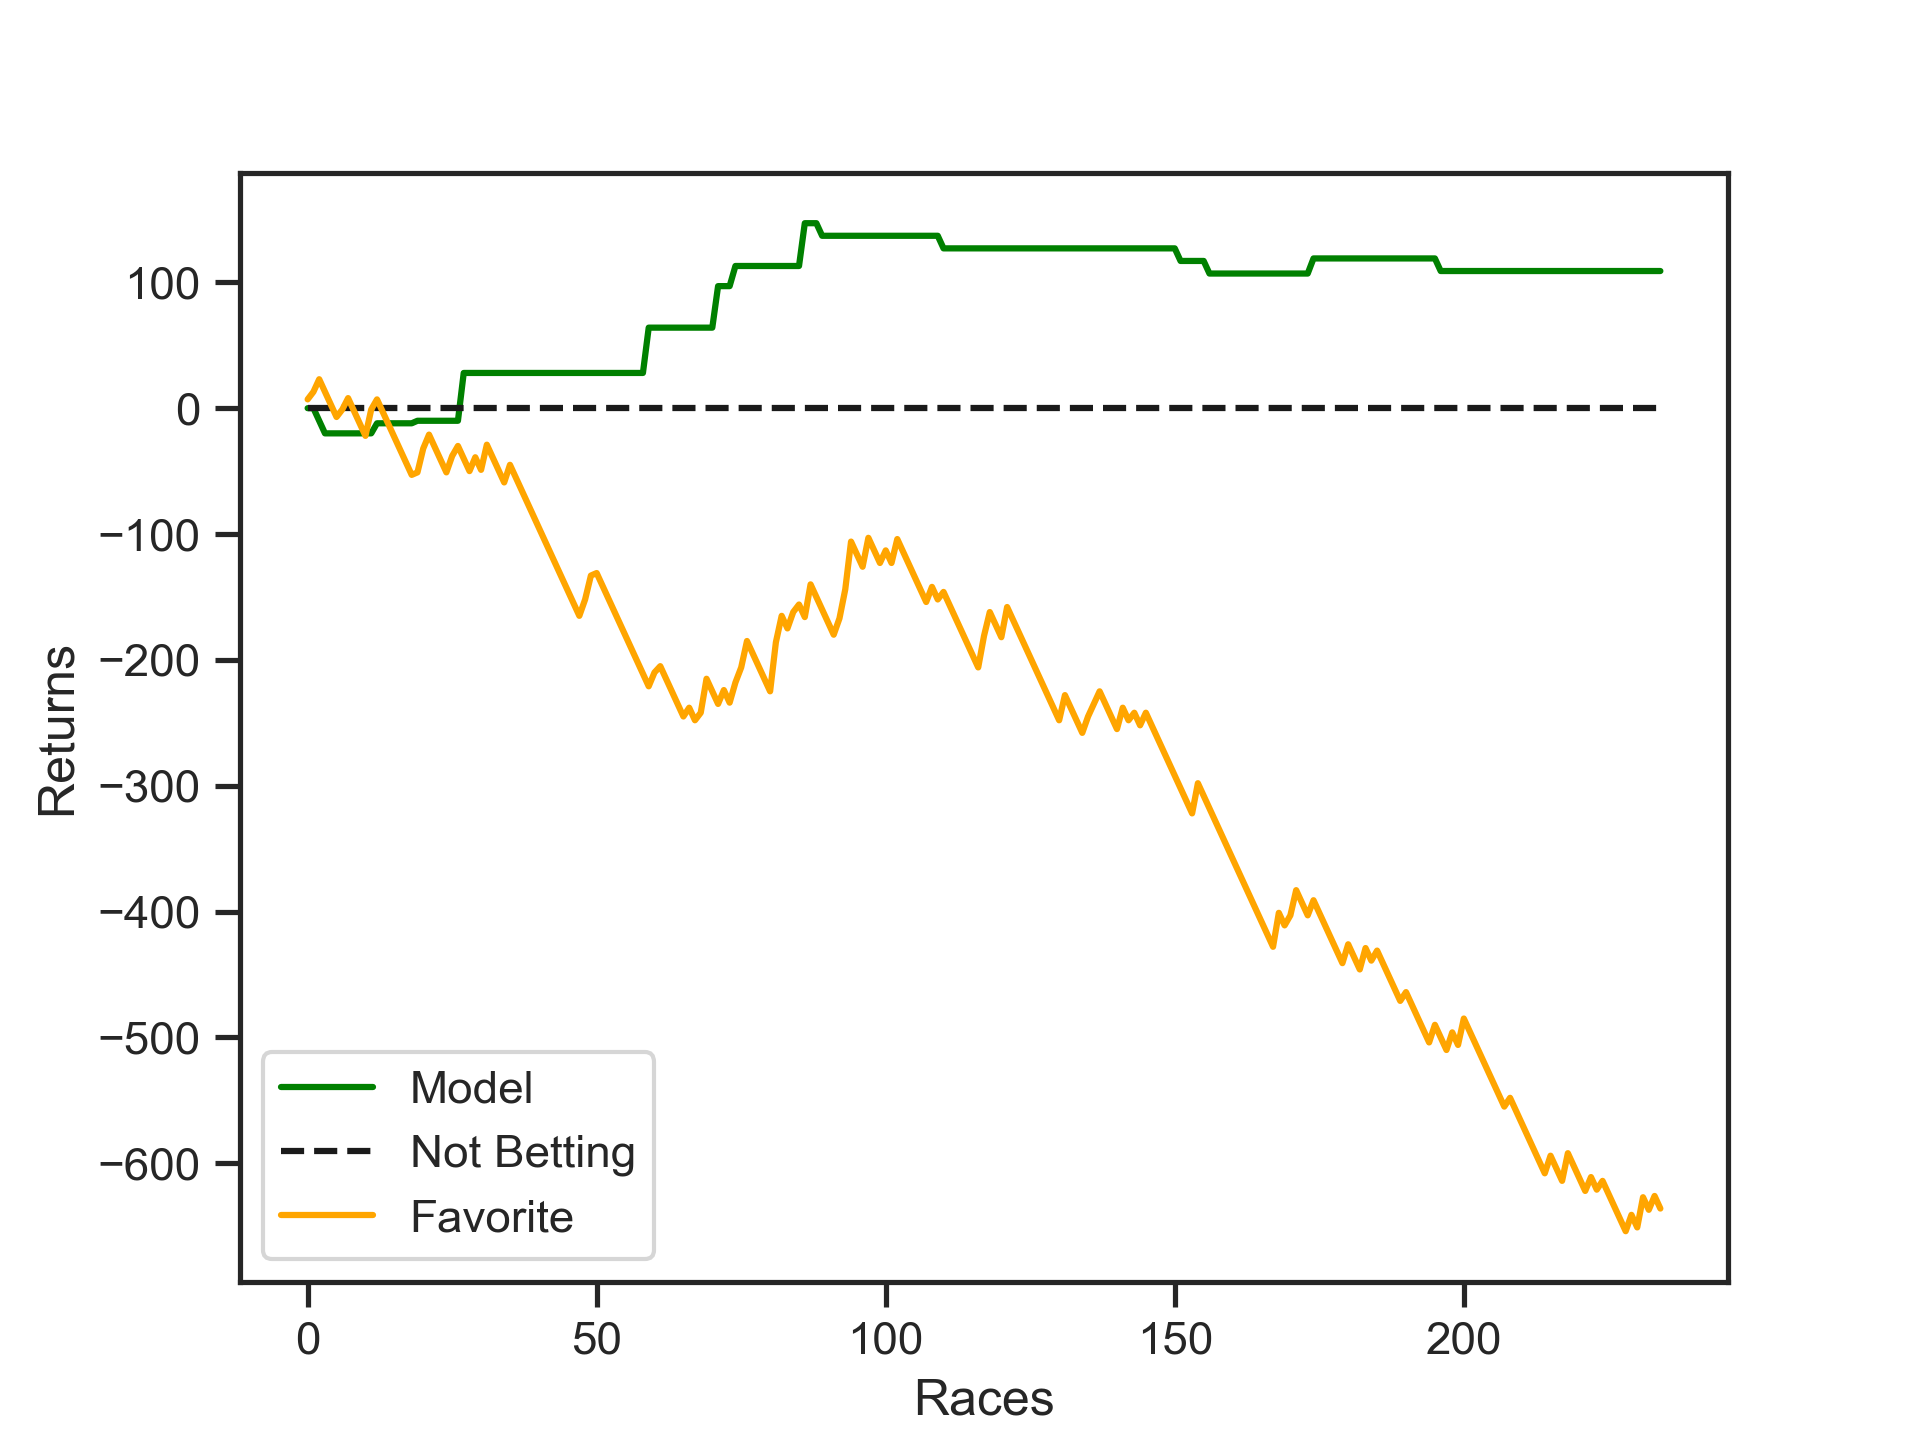 horse betting machine learning tools